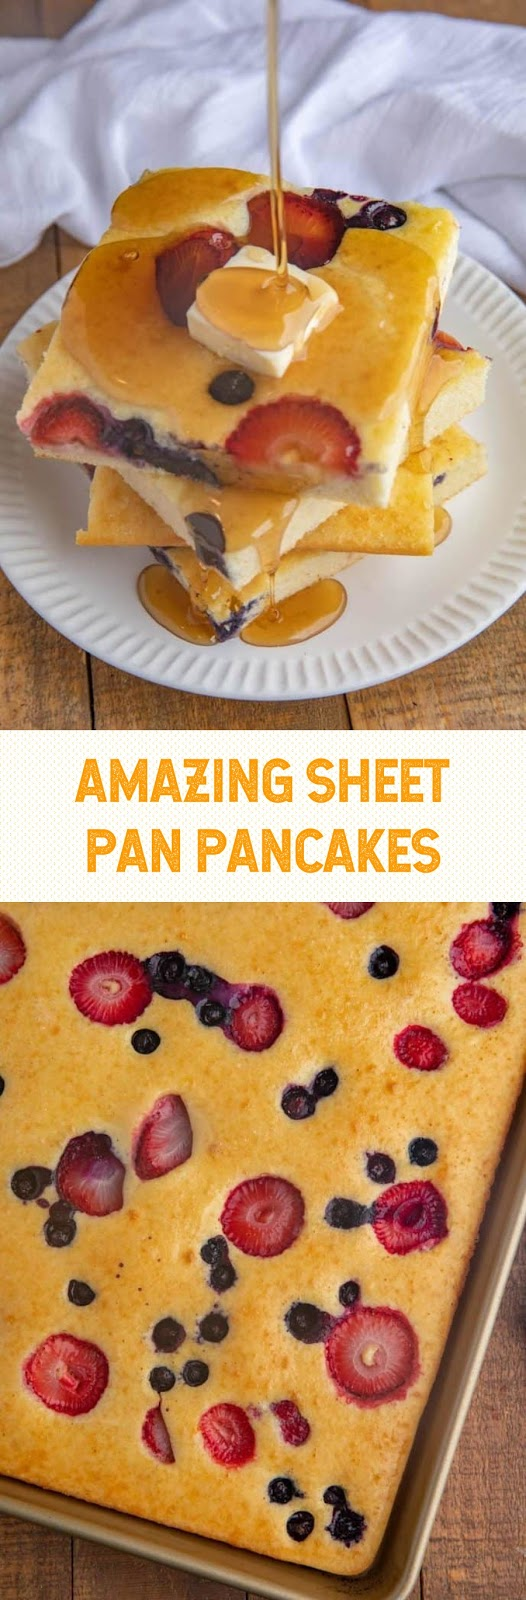 AMAZING SHEET PAN PANCAKES